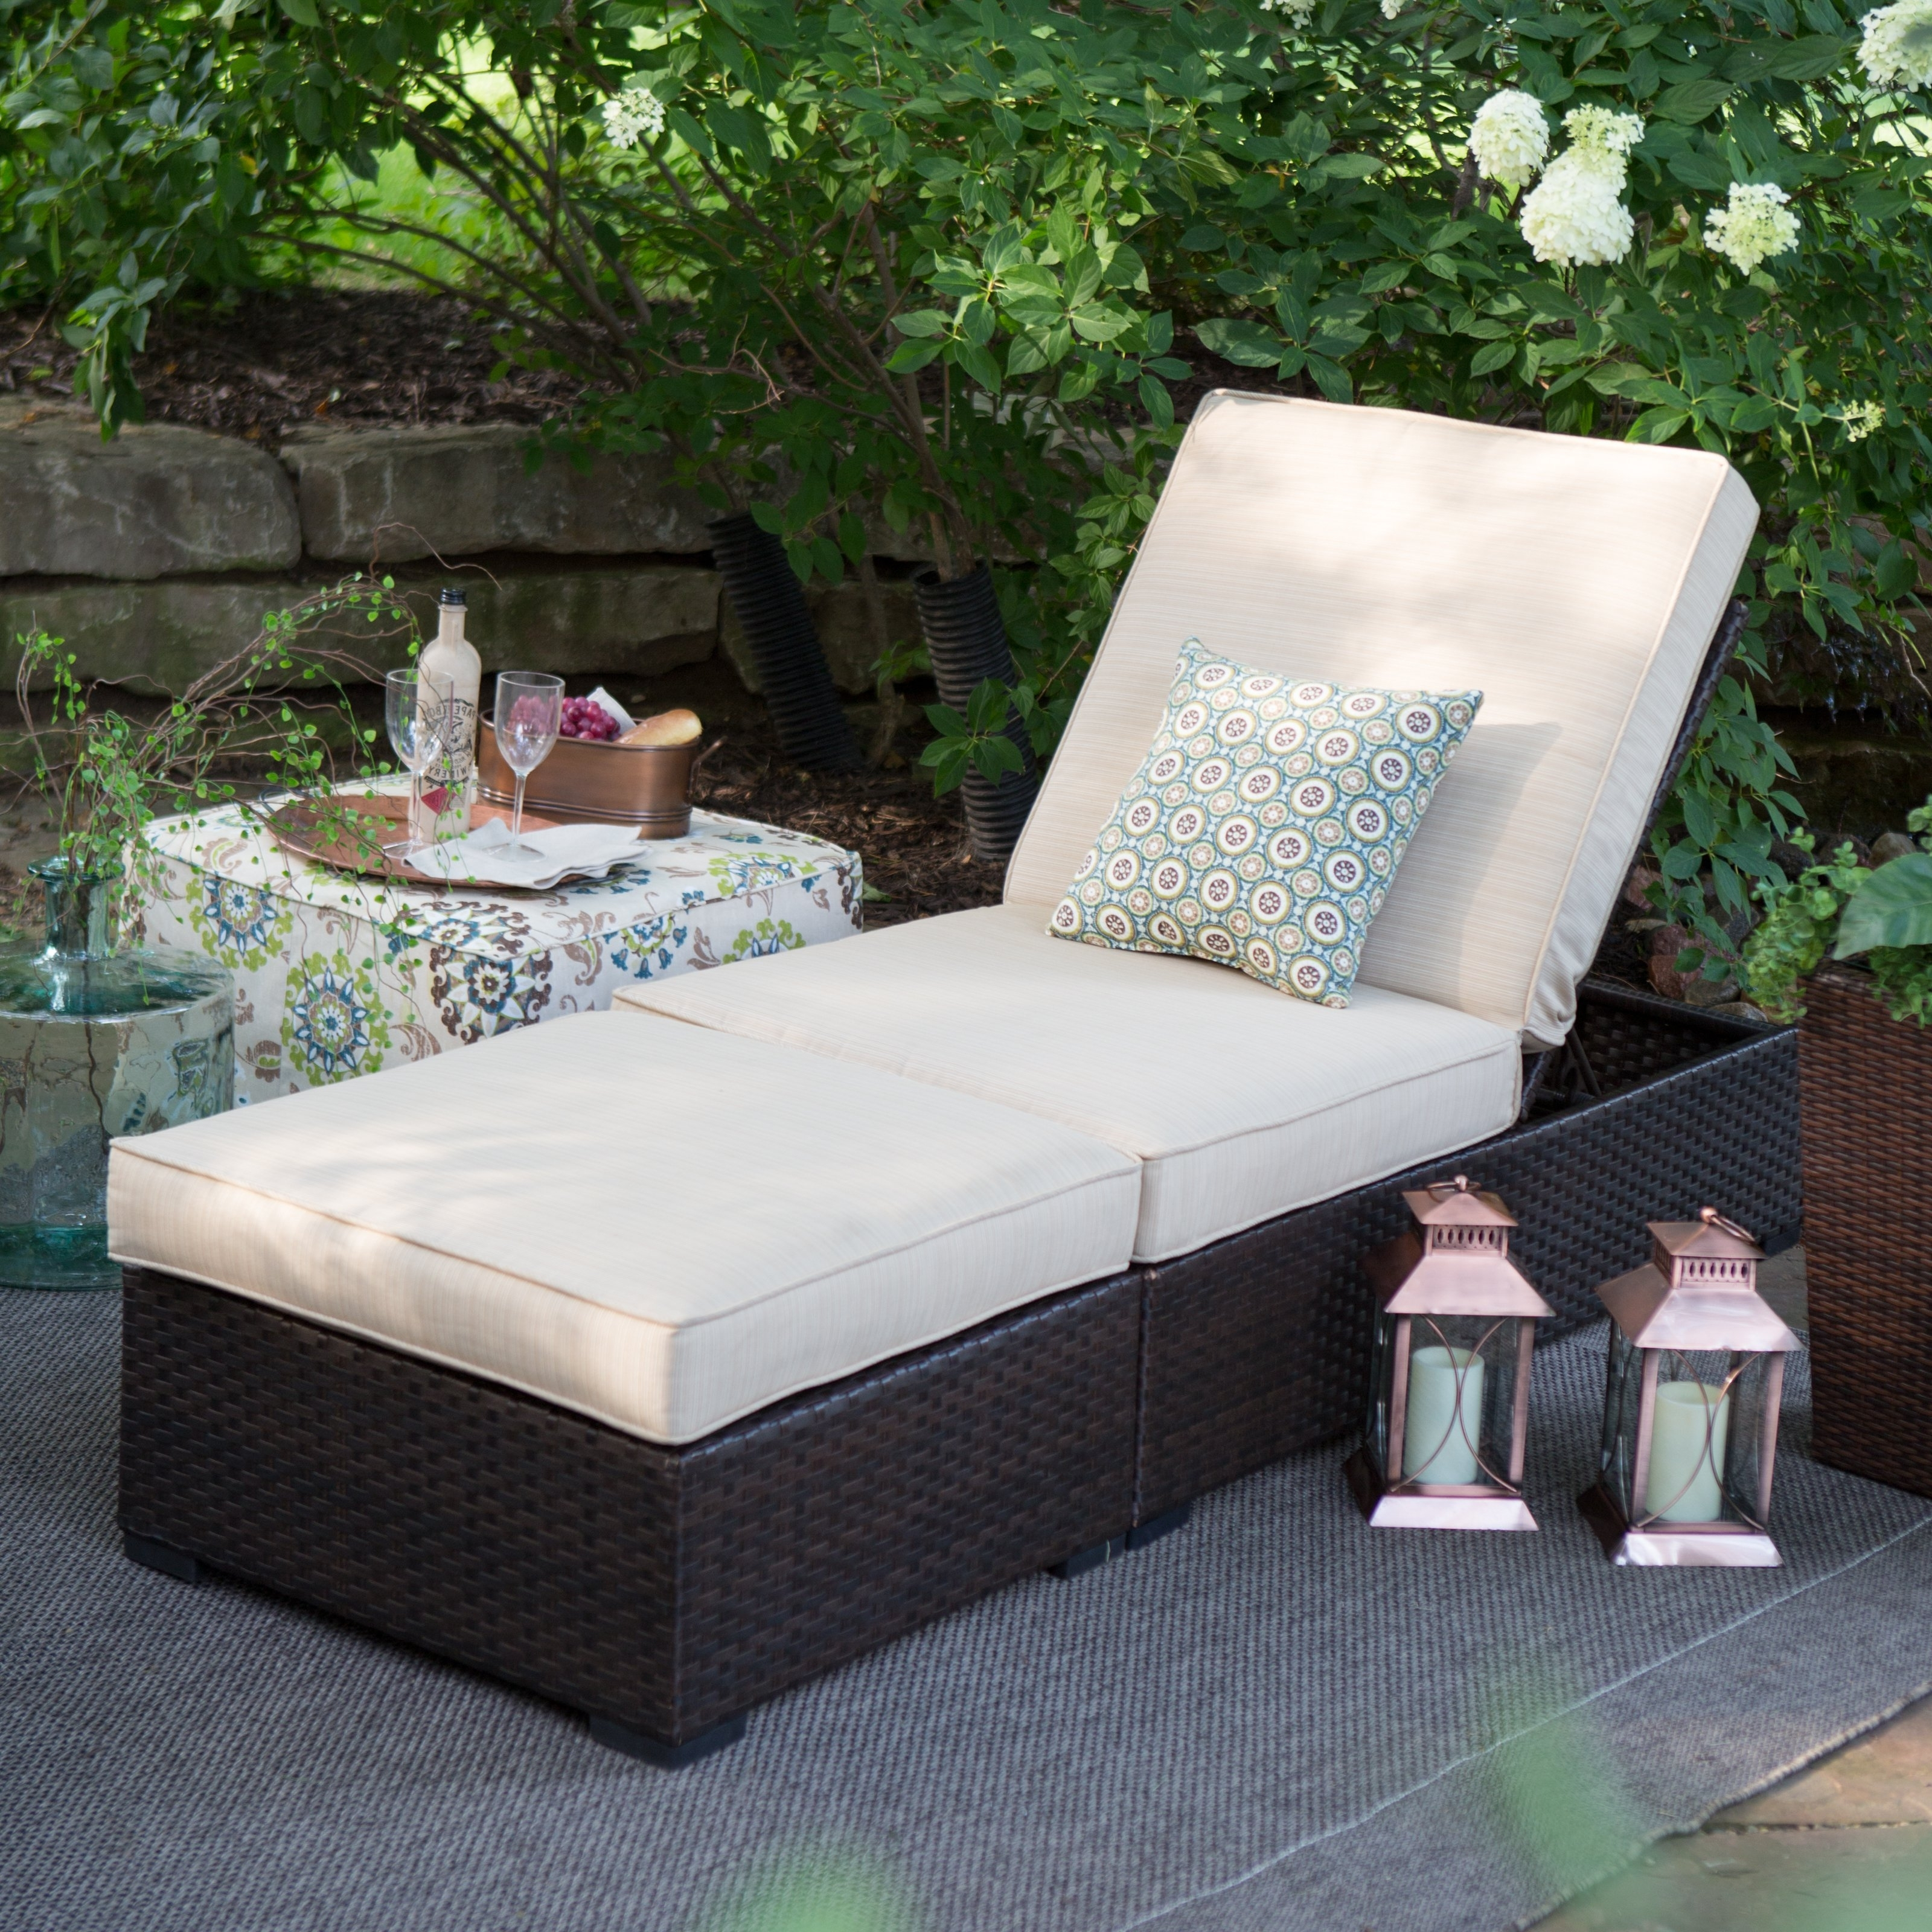 Double Outdoor Chaise Lounges For Fashionable Belham Living Marcella Wide Wicker Chaise Lounge With Ottoman (View 5 of 15)